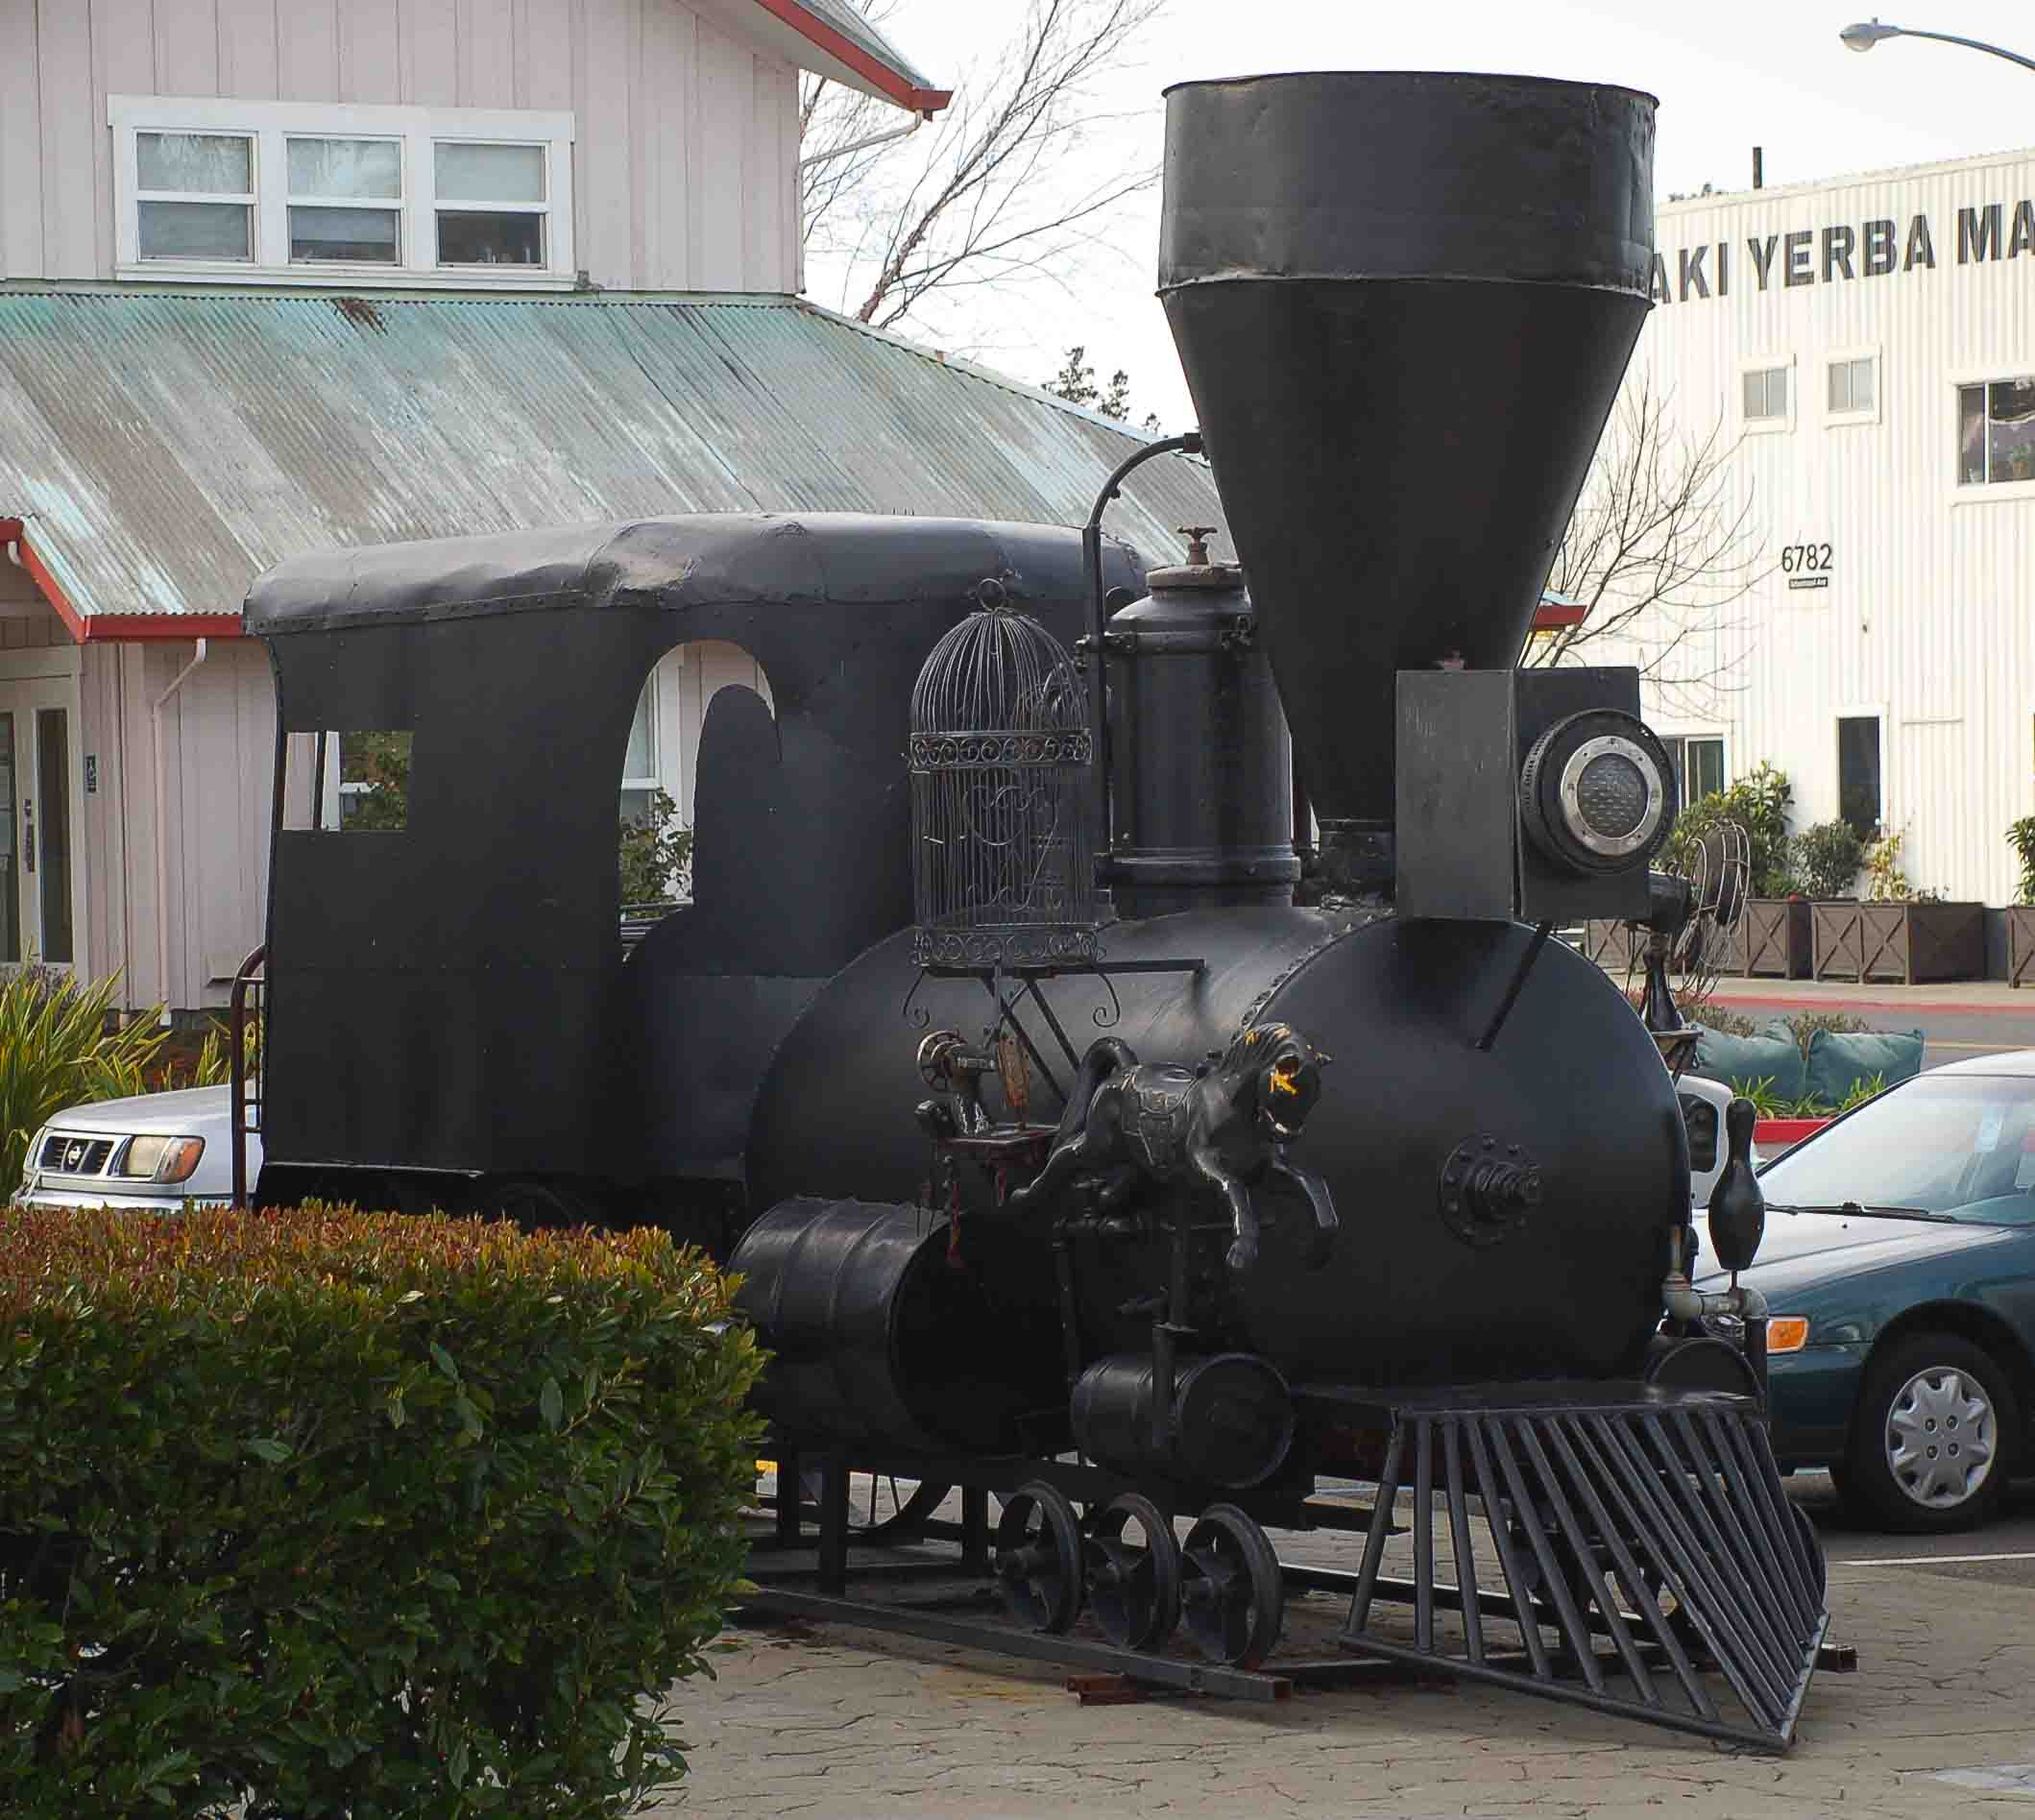 Amiot updates the Great Locomotive regularly making it an ever-evolving artwork.